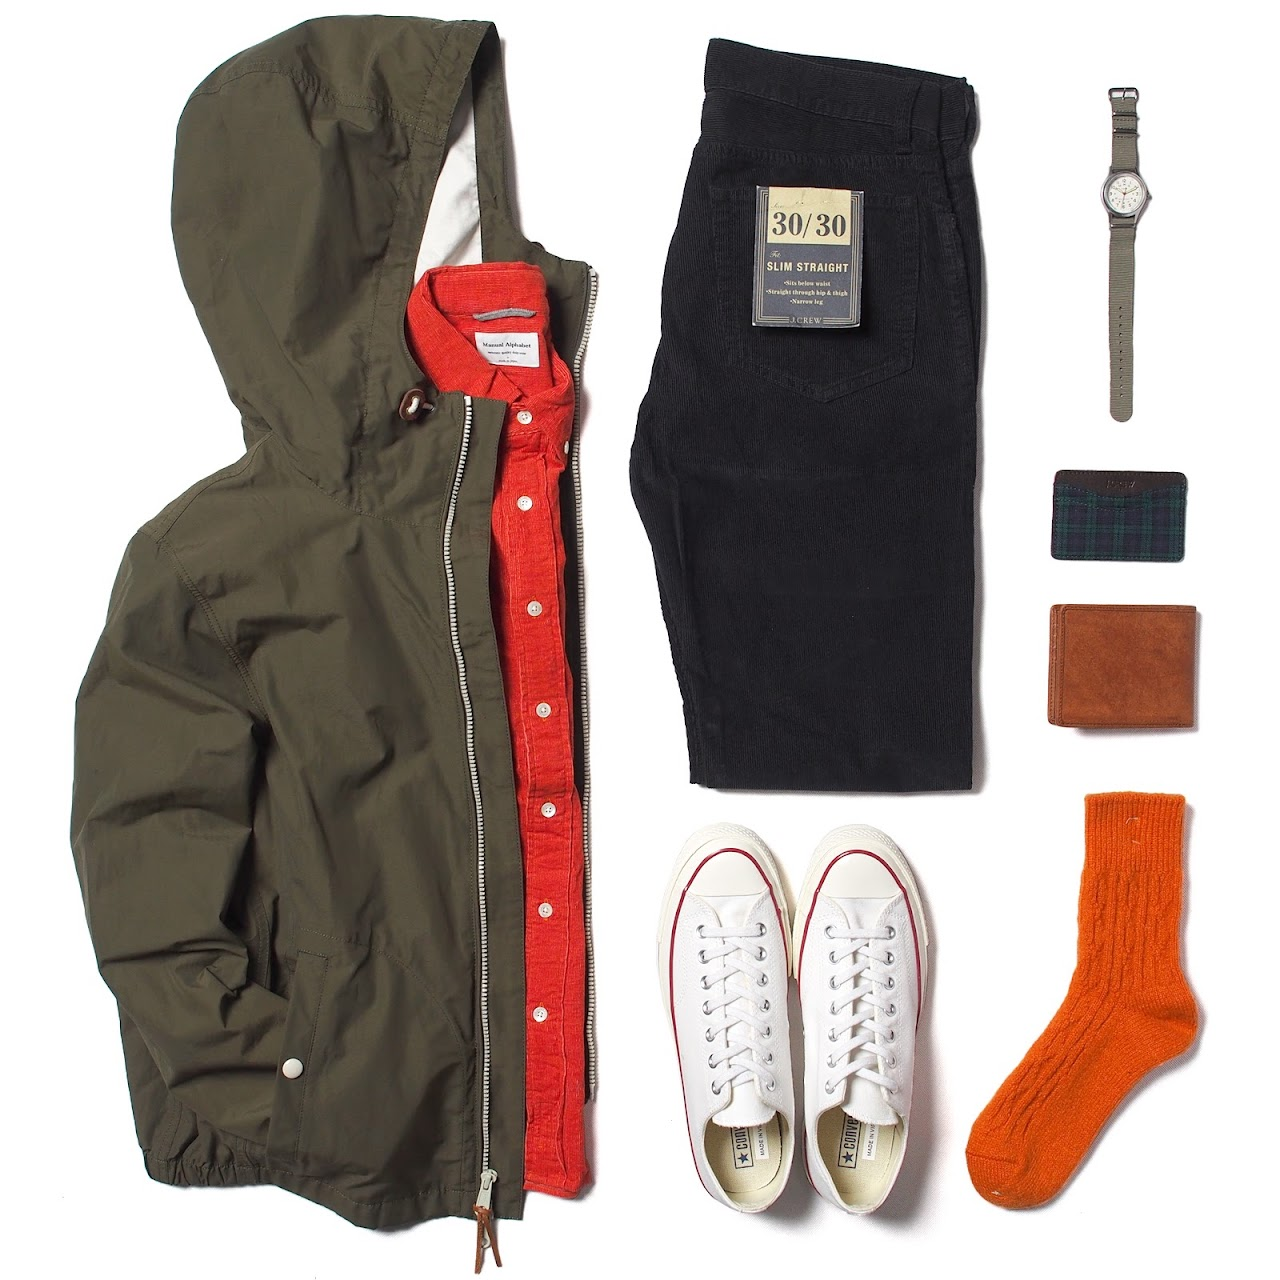 2016-11-28 Today's Outfit Idea